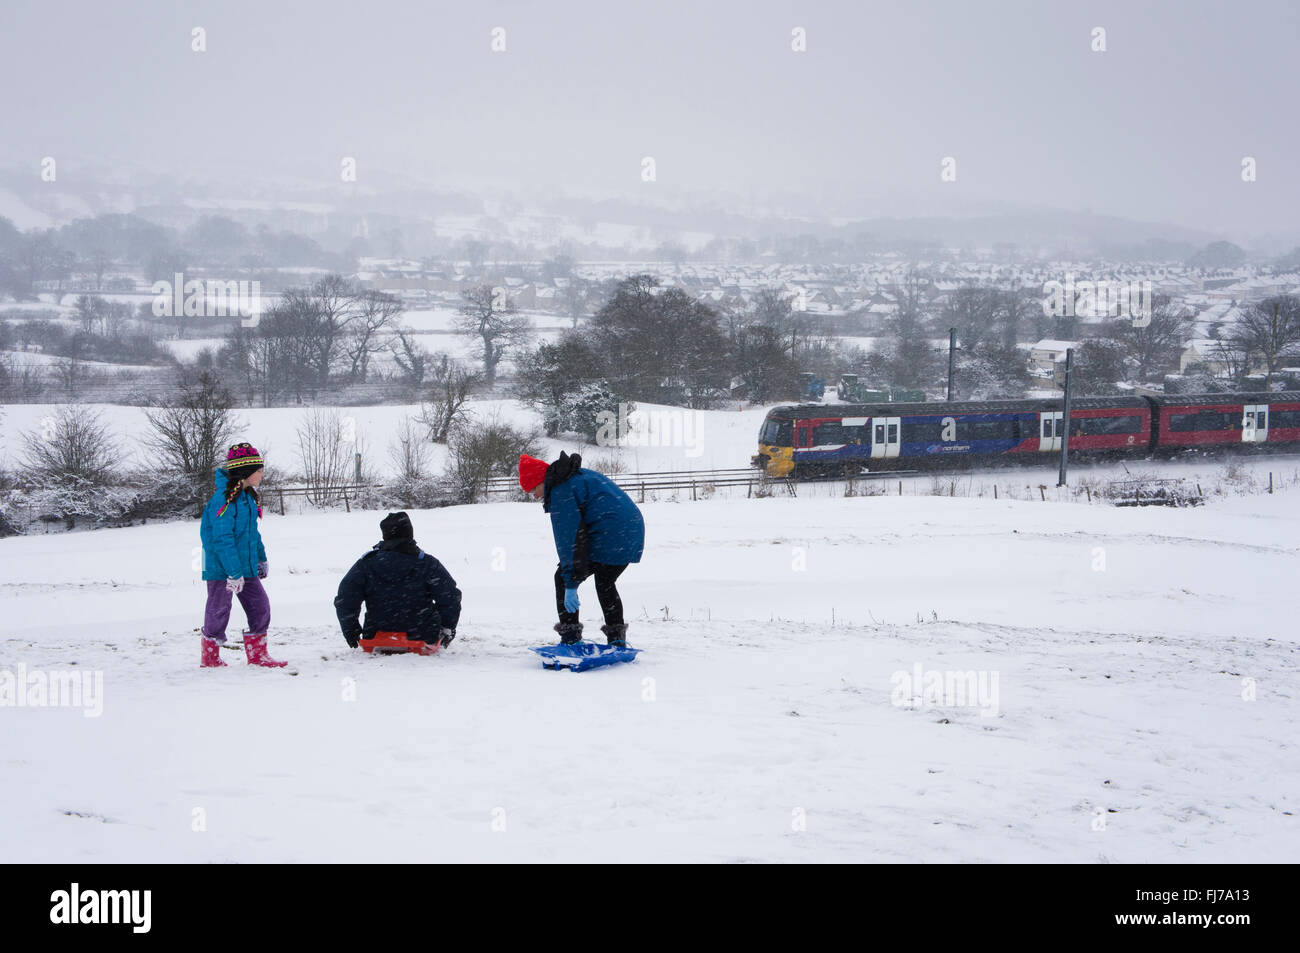 Winter countryside scene - in the snow, a family of 3 with sledges, whilst a train travels past beyond - Burley Stock Photo